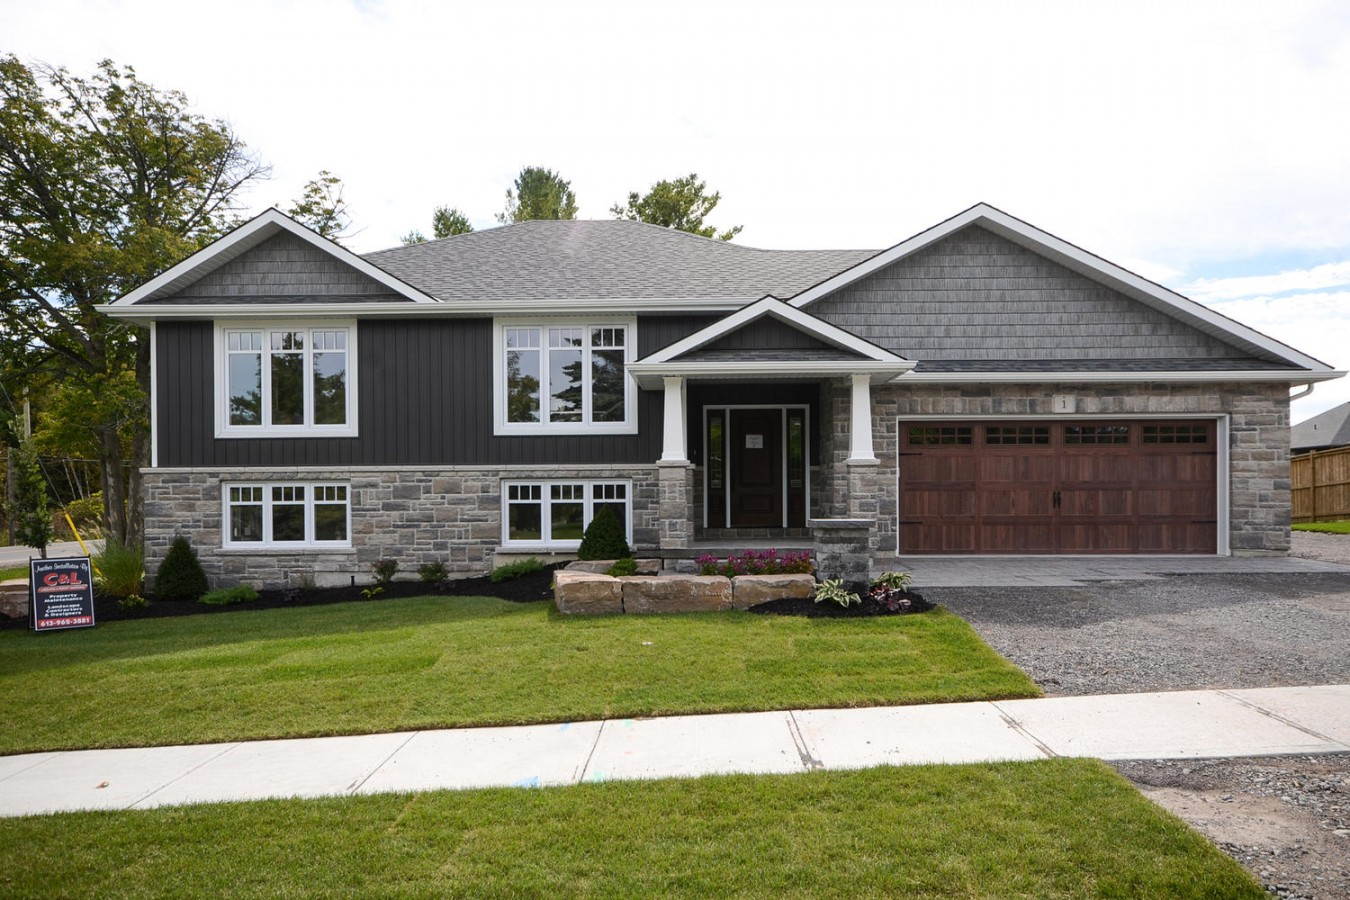 Birchmount road model home diamond homes by davis for Home by home